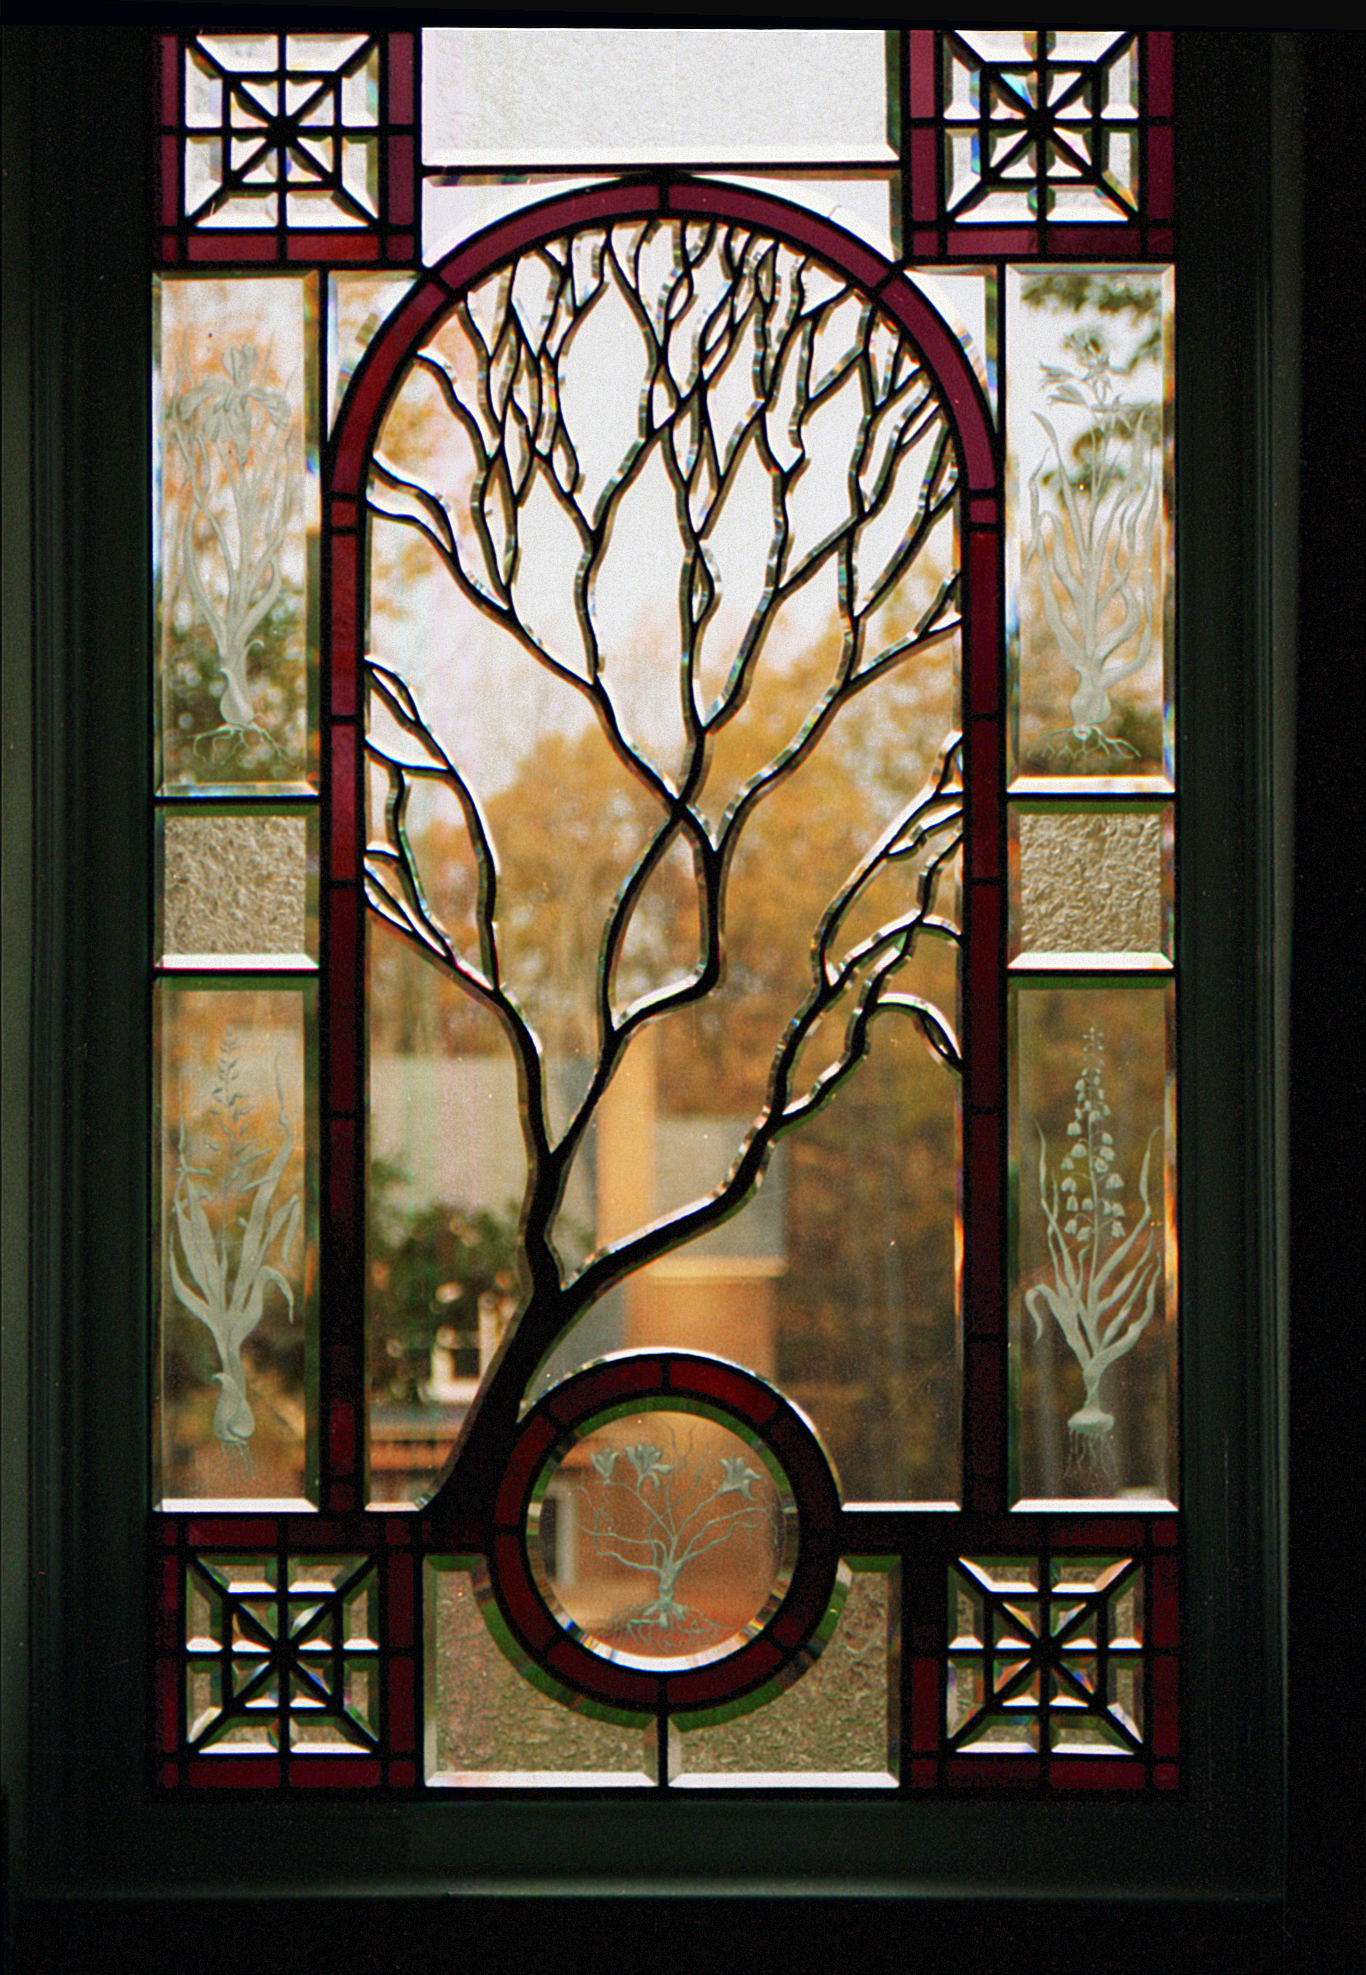 Contemporary Stained Gl Sculpted Tree Beveled Window Cain Art 2016 All Rights